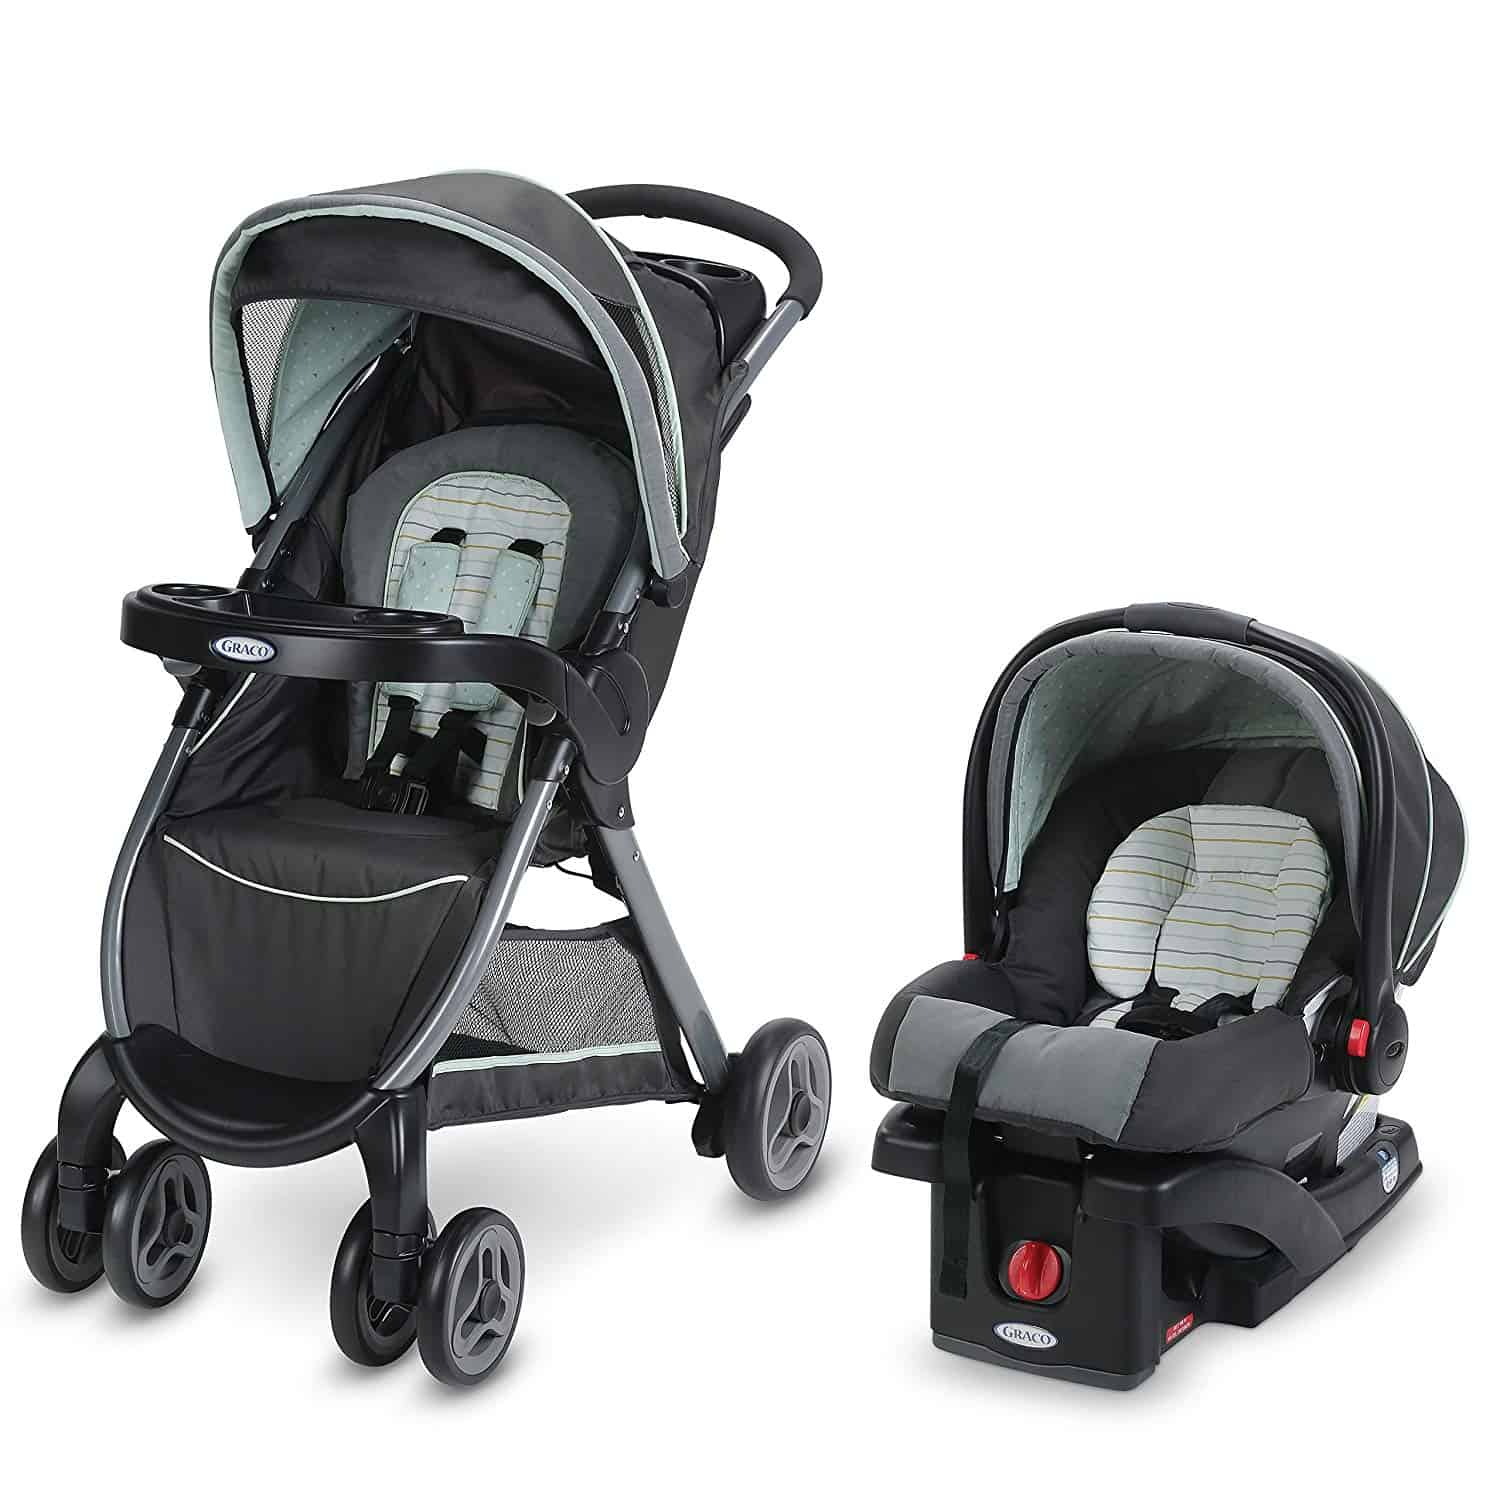 Graco FastAction Fold Click Connect Travel System Reviewed